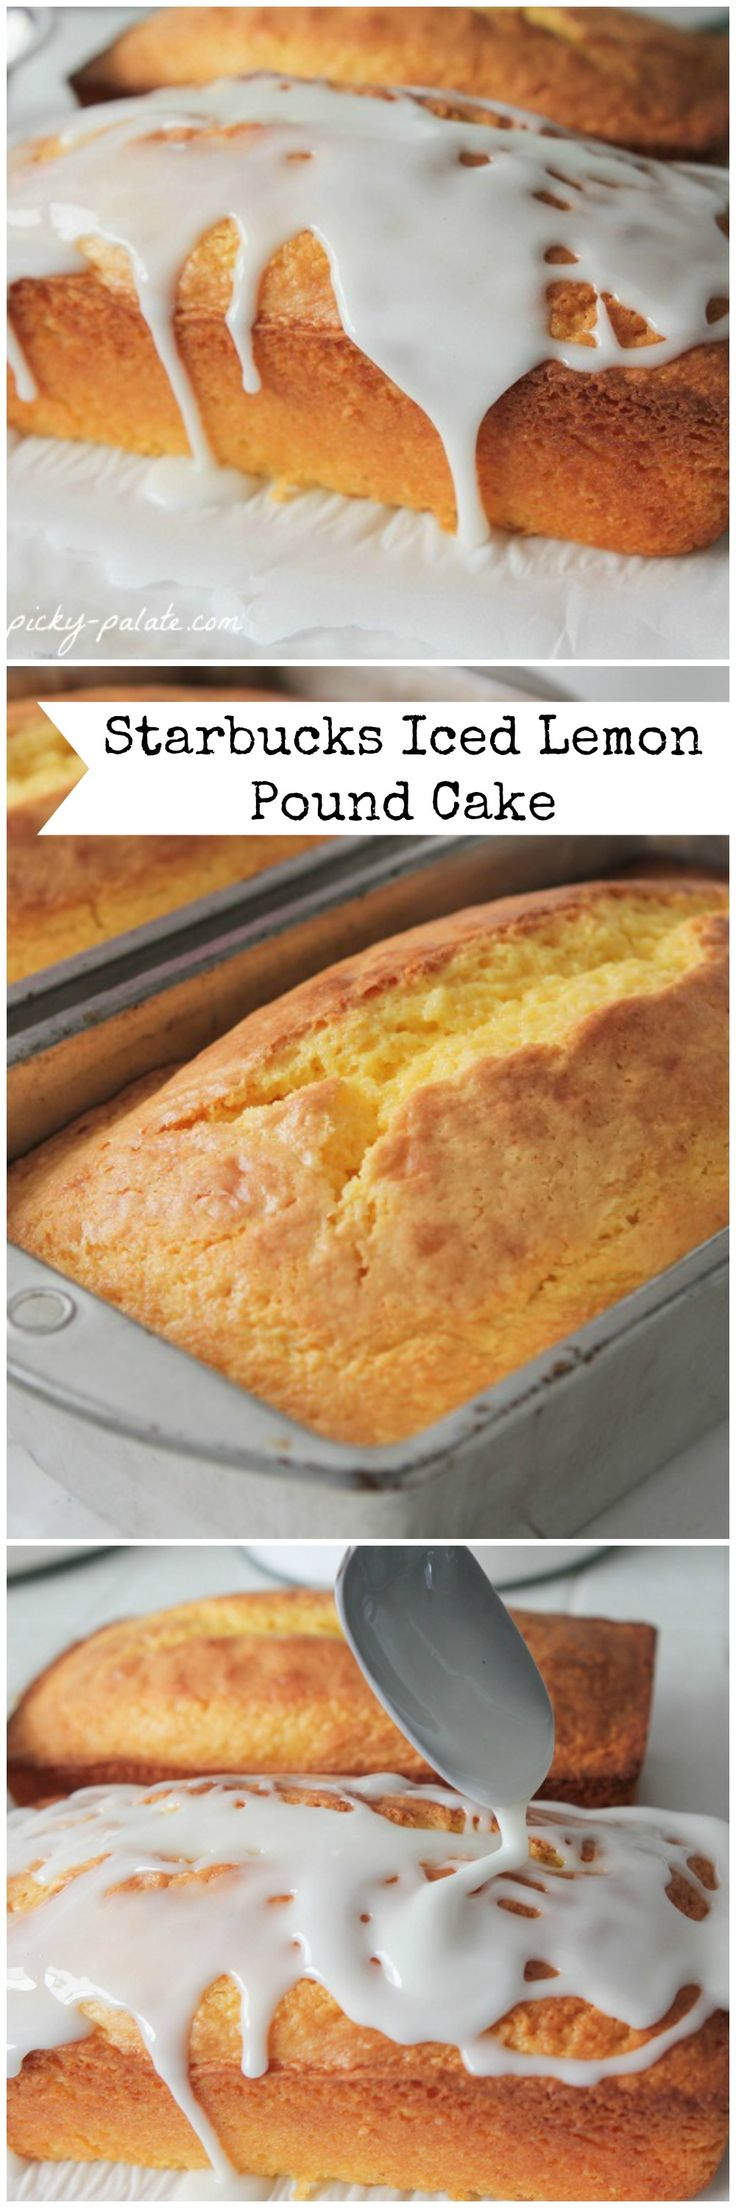 Starbucks Iced Lemon Pound Cake Copycat Recipe!